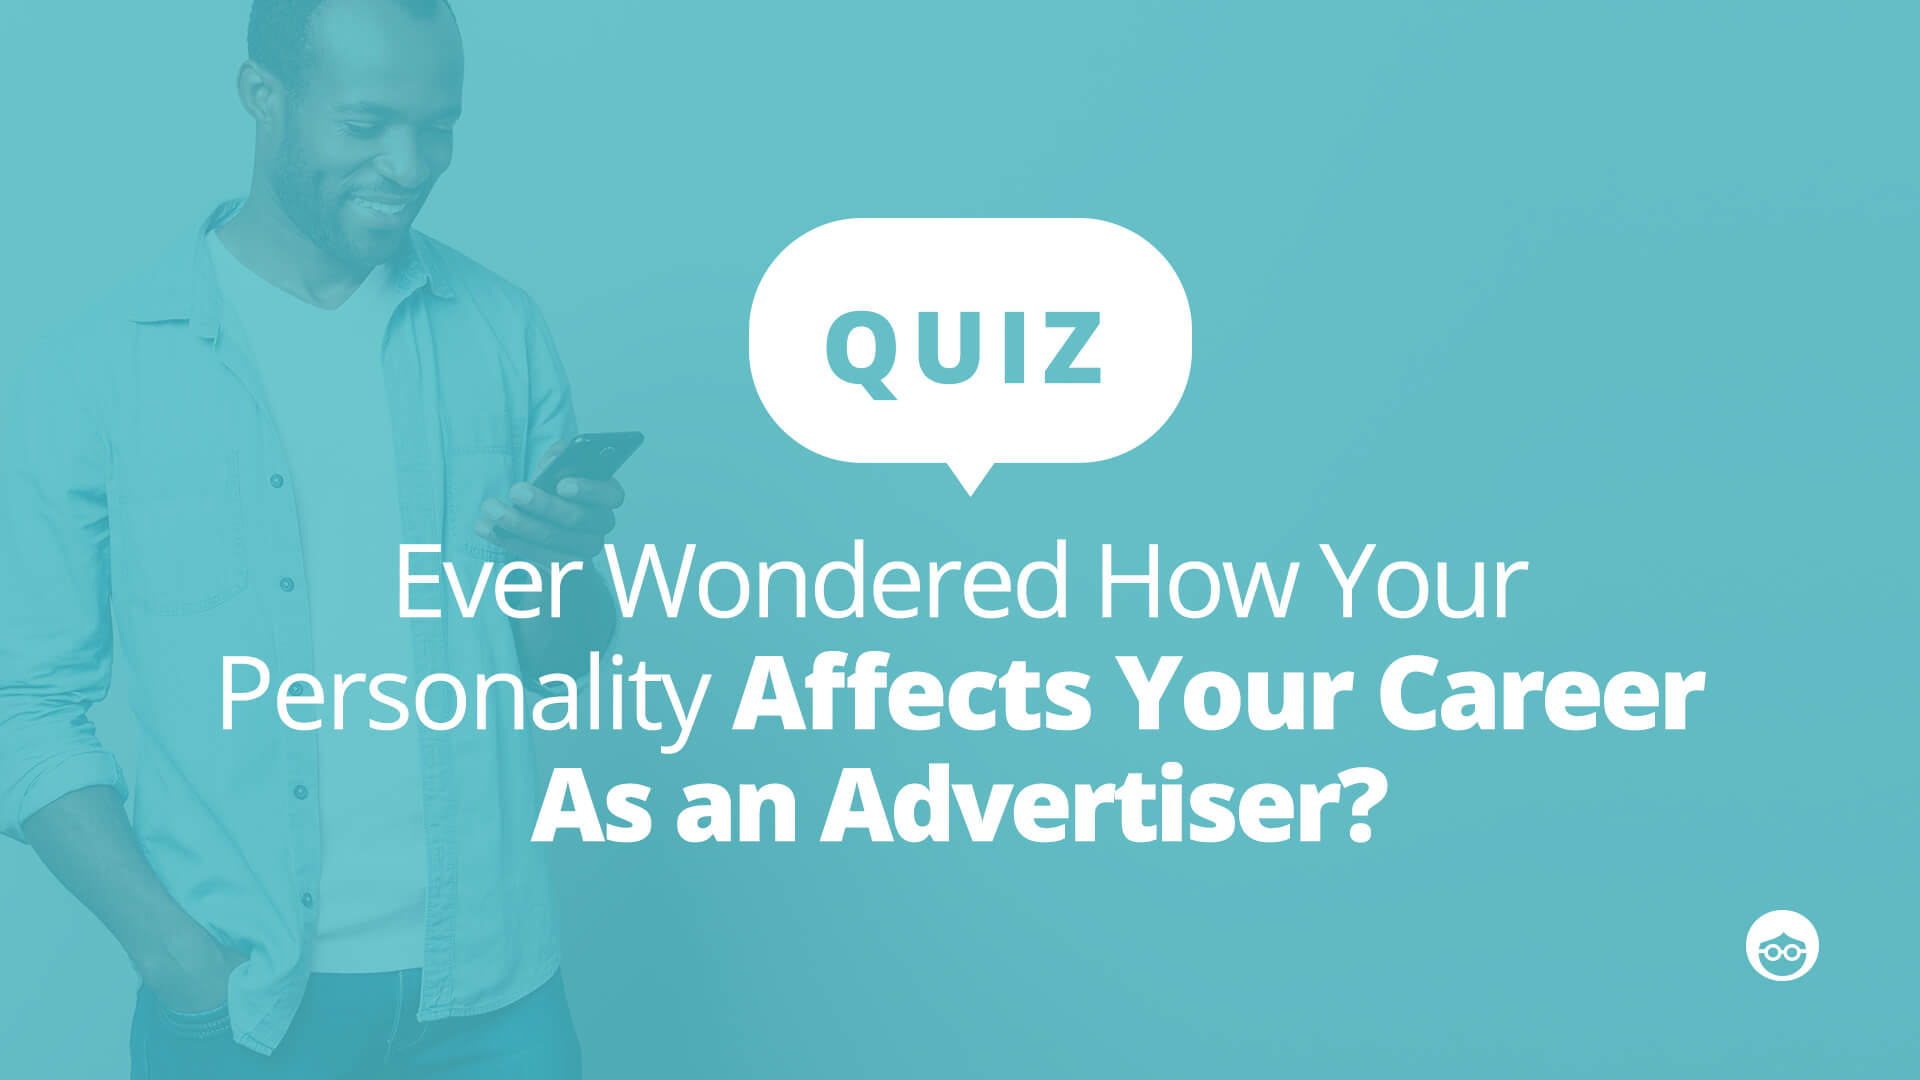 What Kind of Advertiser Are You?